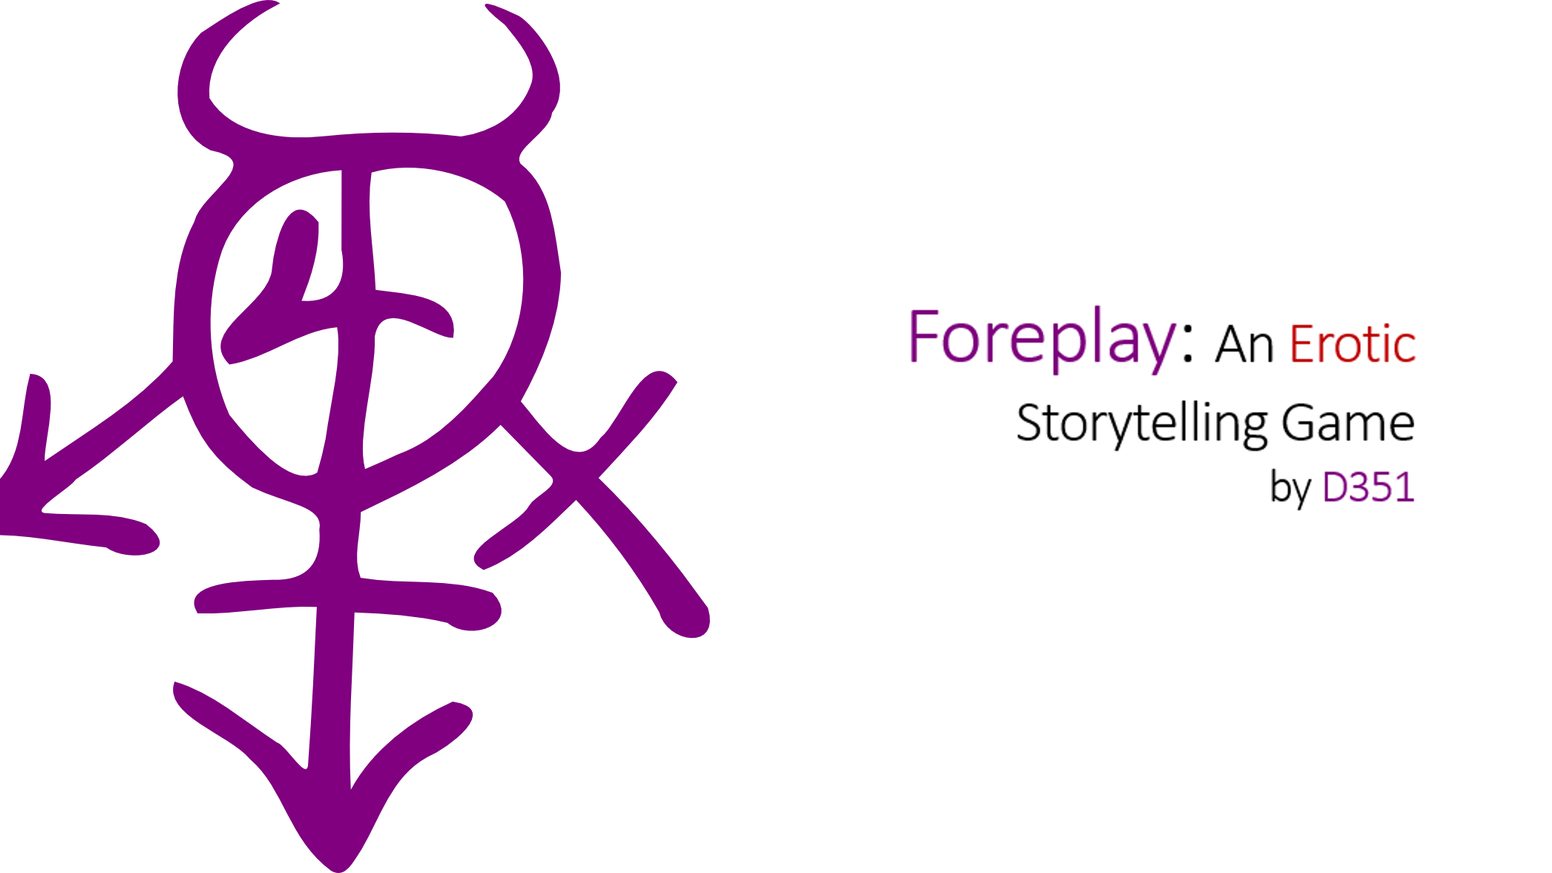 Foreplay is an erotic storytelling game in which players' success is directly dependent on their ability to get a *rise* out of others.